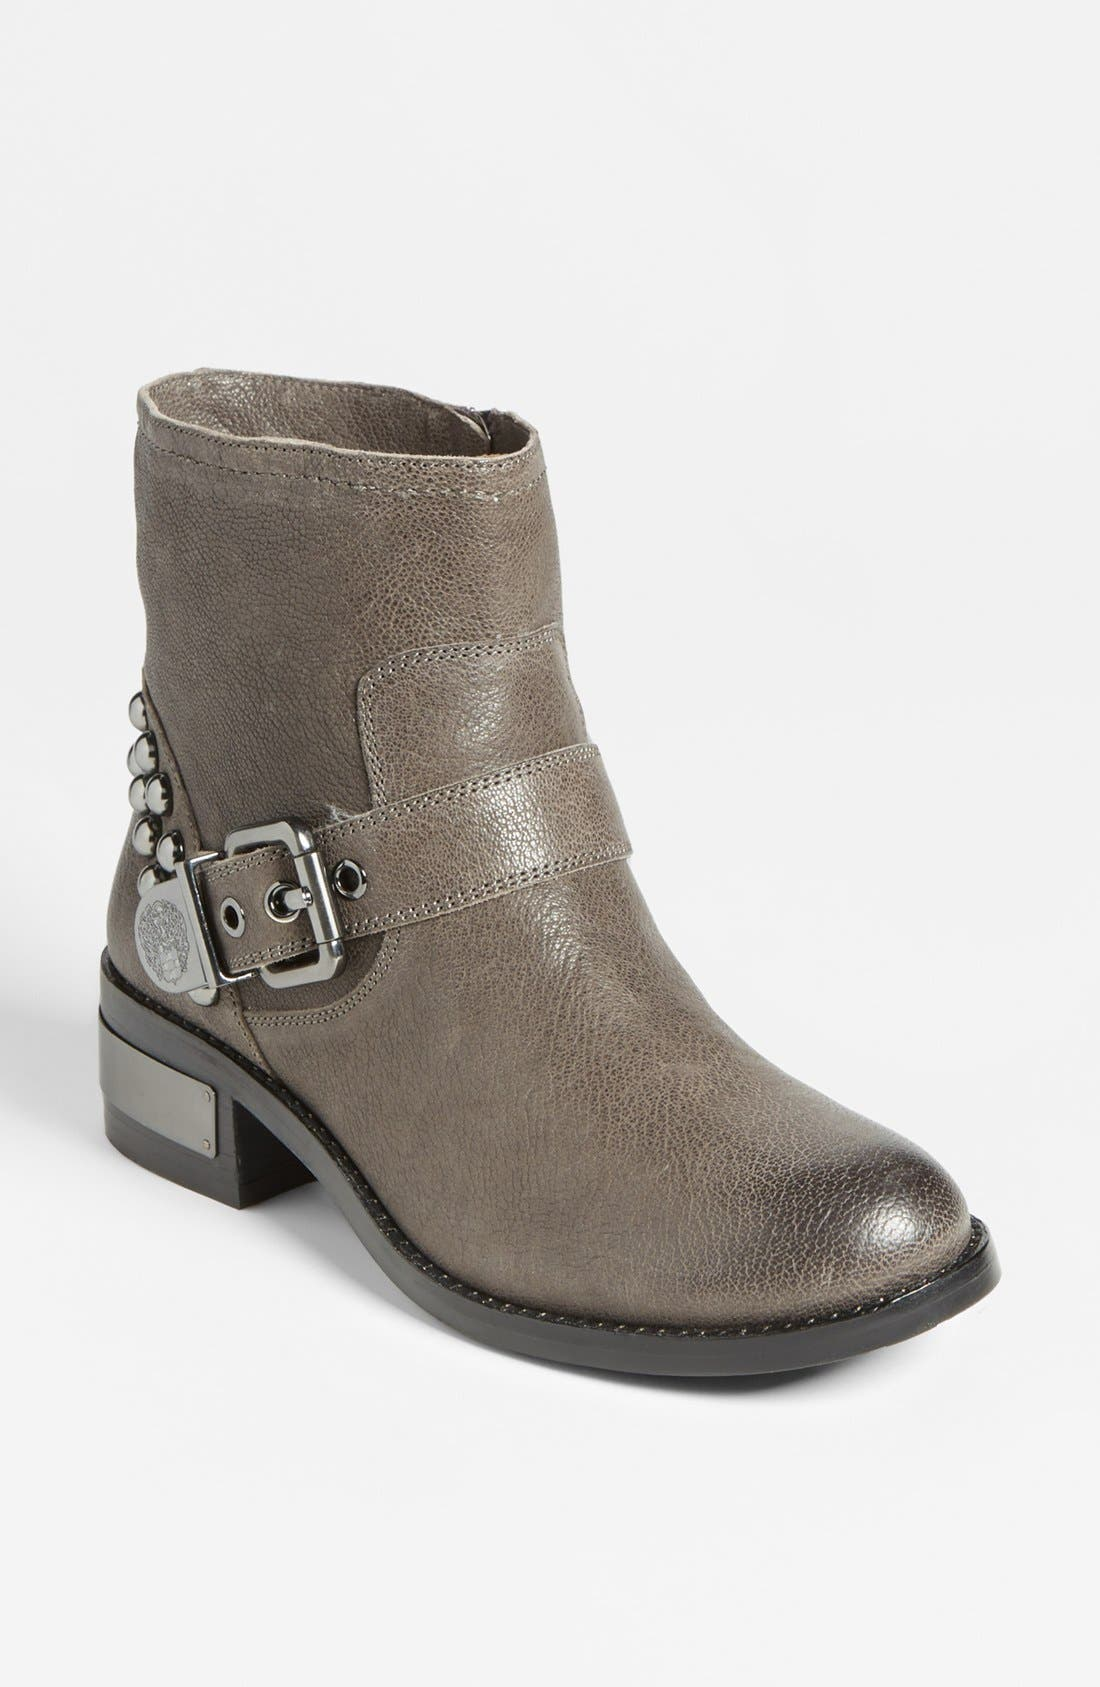 Main Image - Vince Camuto 'Windetta' Boot